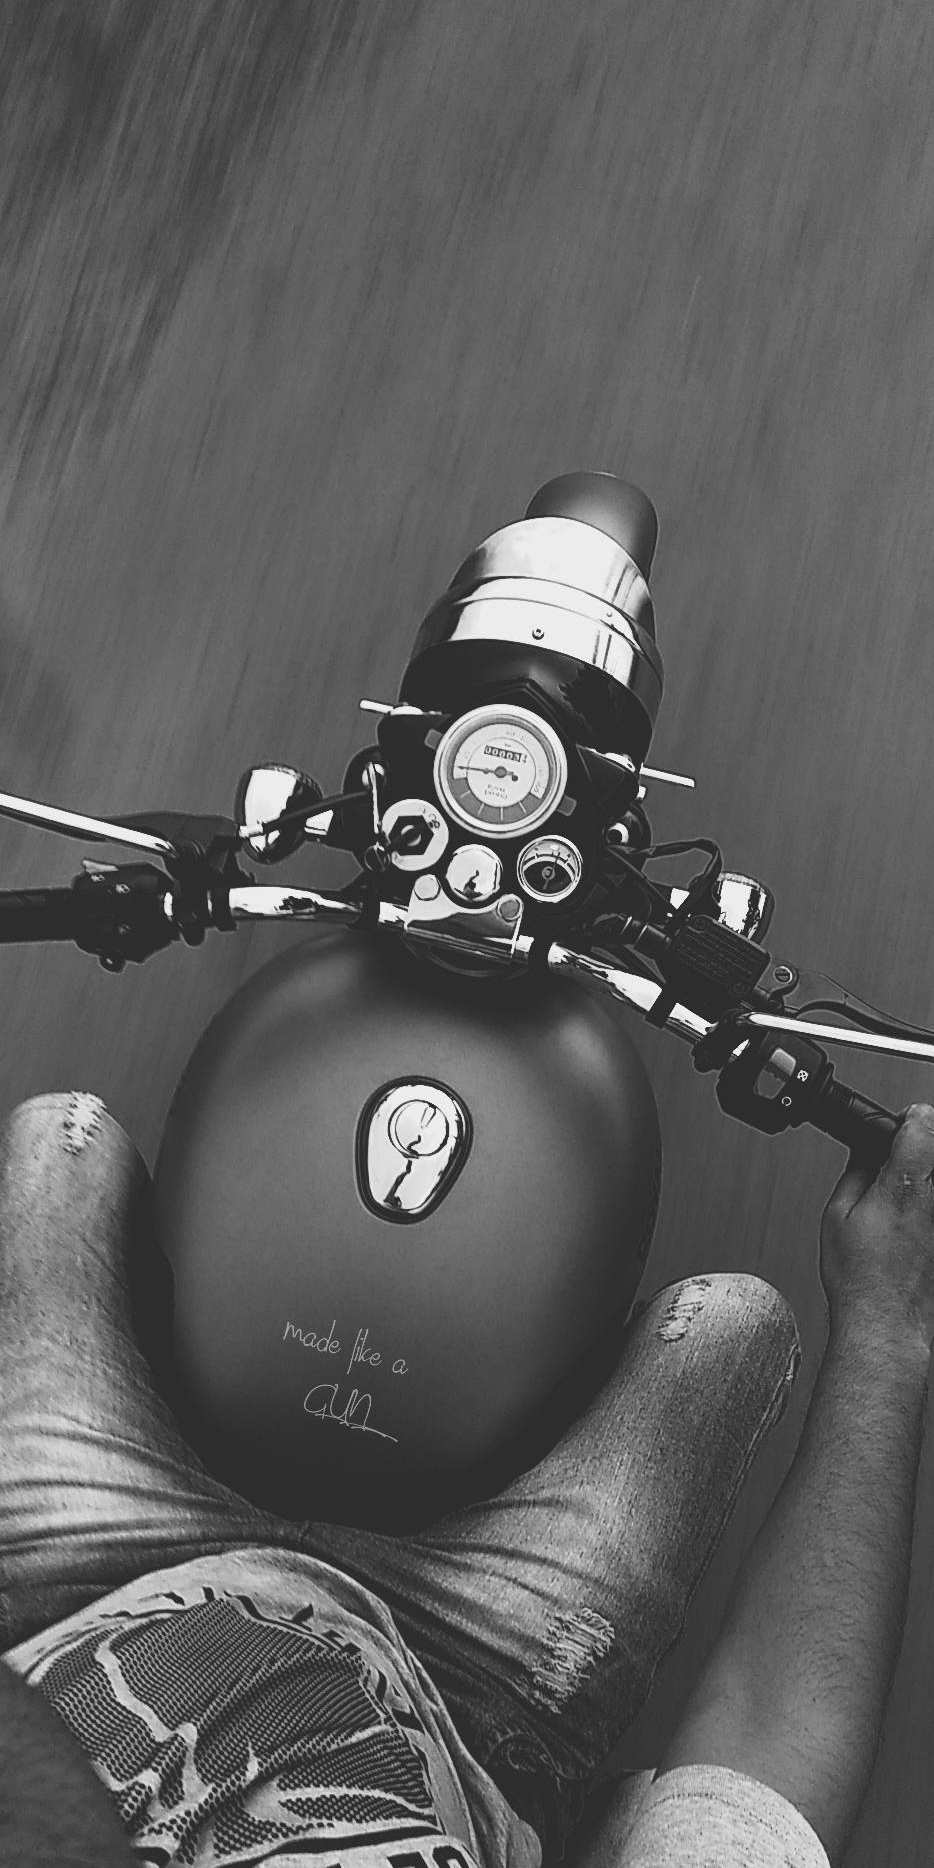 Royal Enfield Classic 500 Stealth Black iPhone Wallpaper